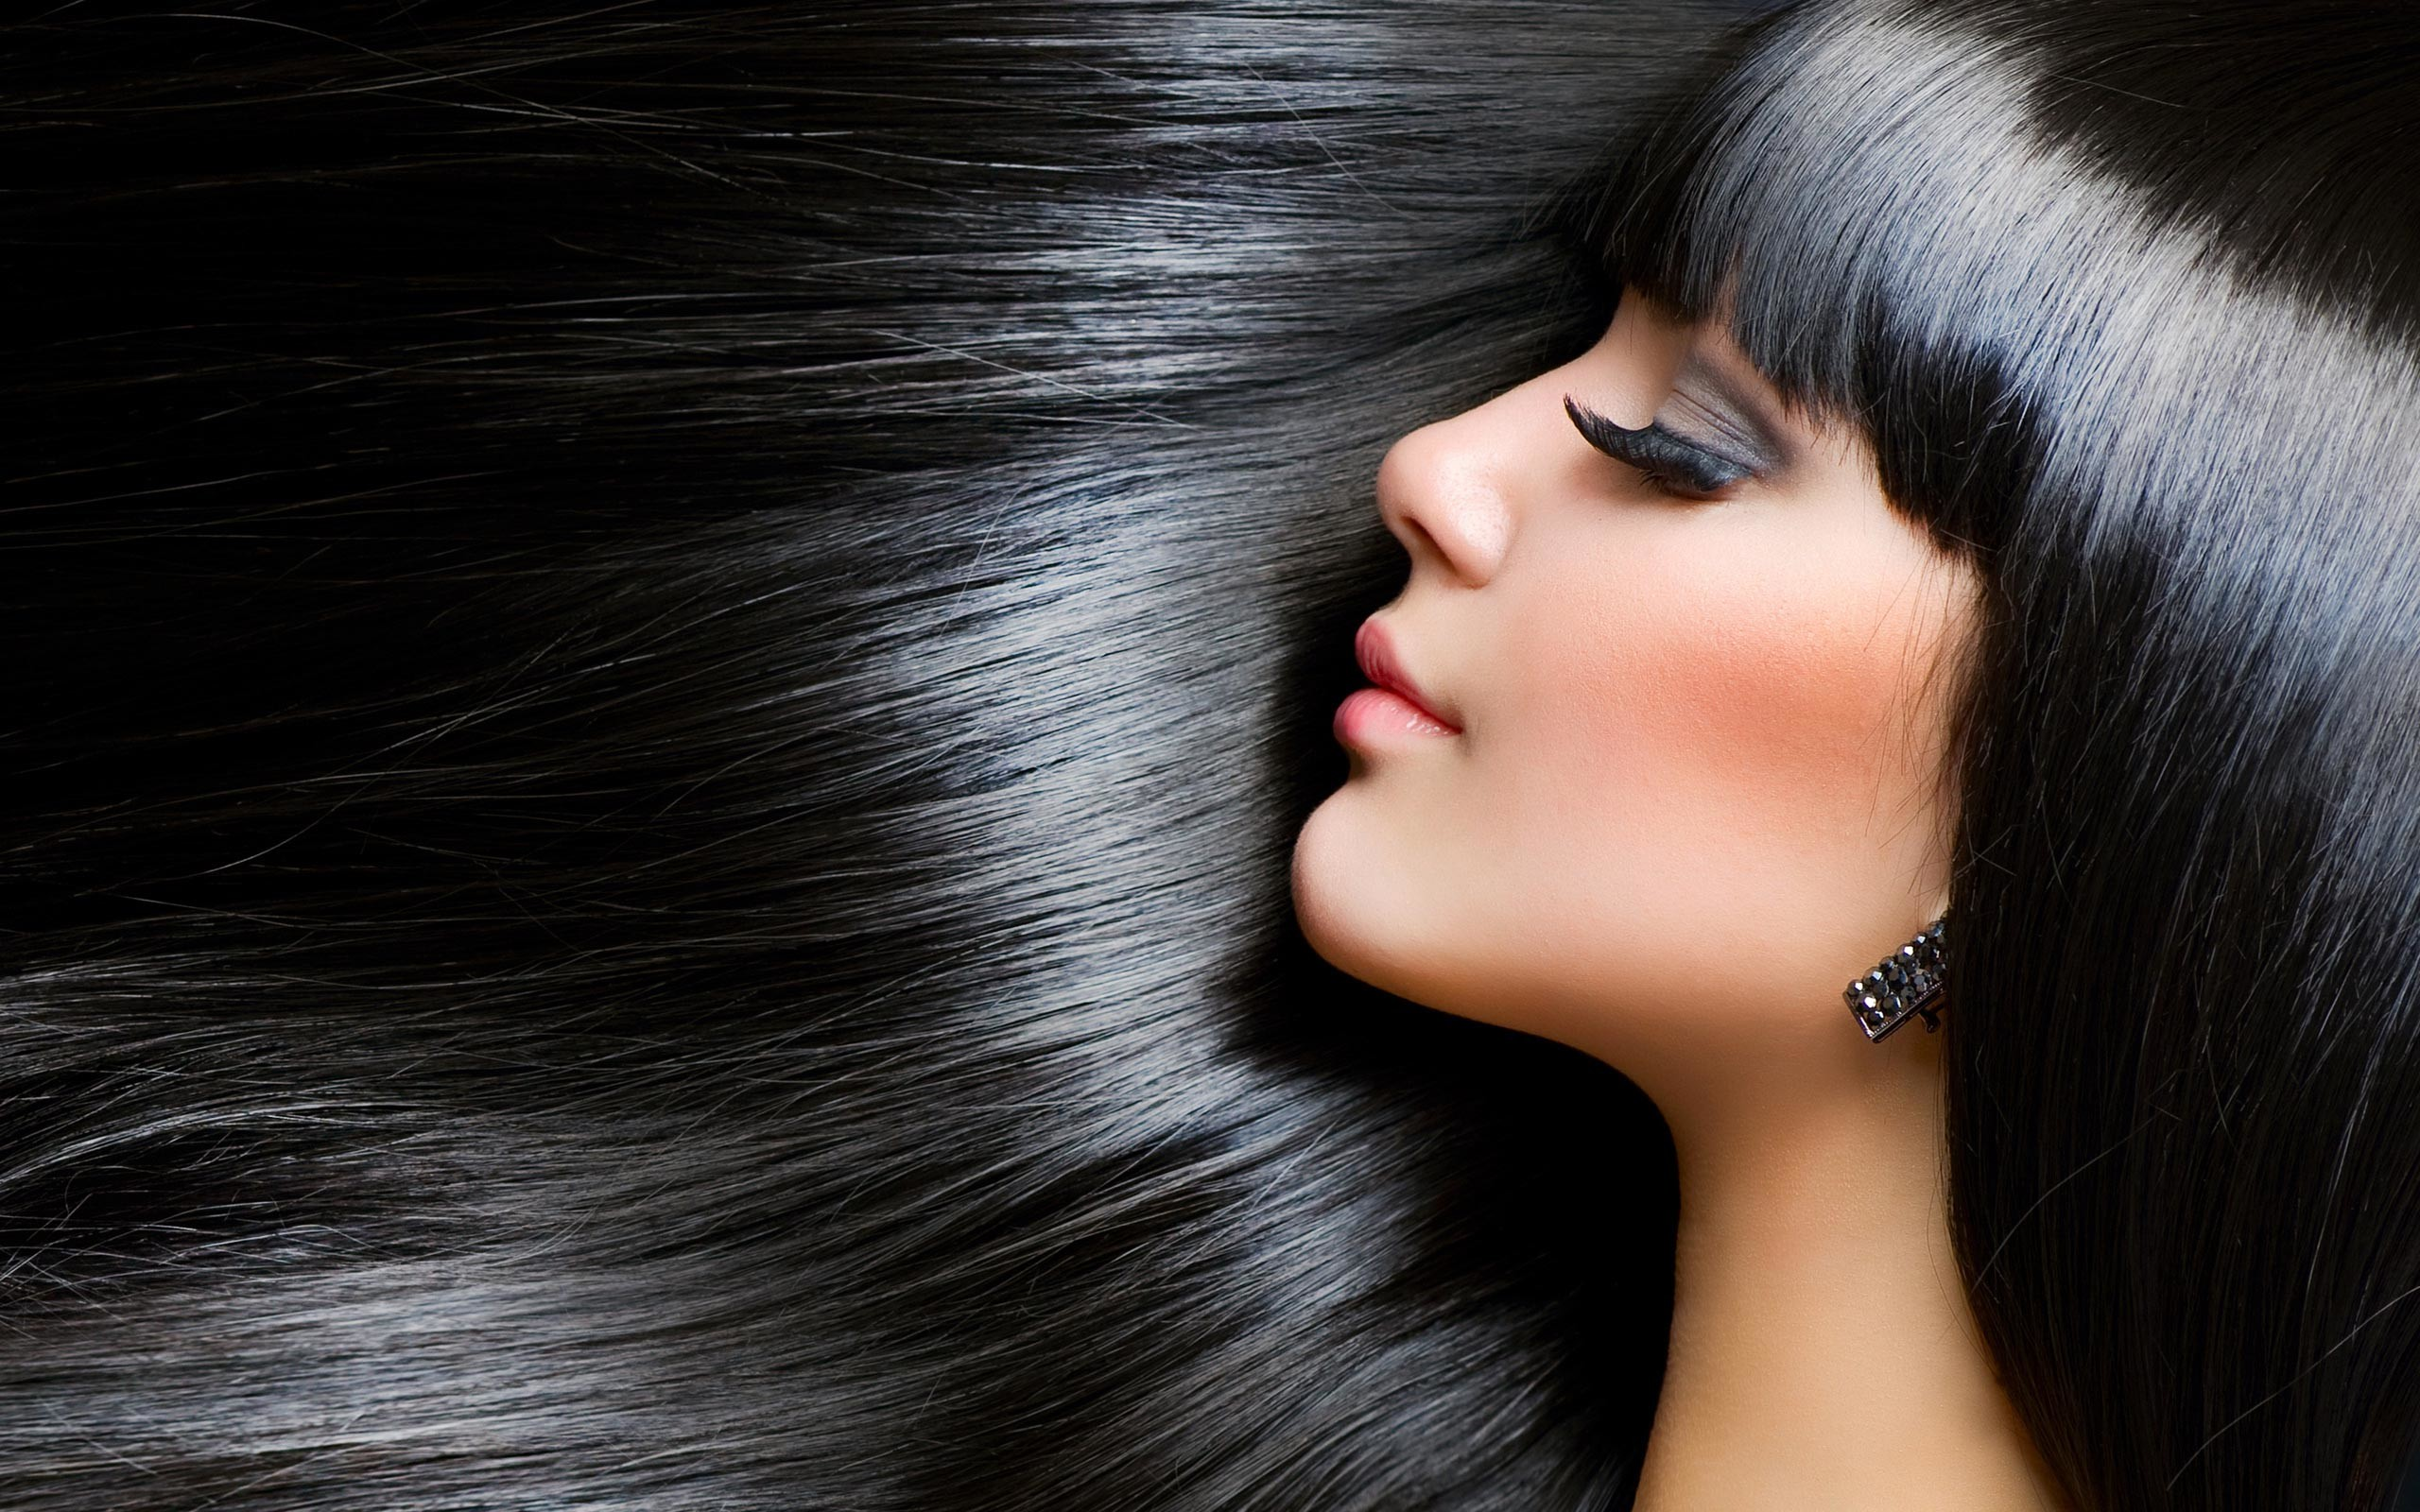 Beauty Salon Wallpaper 41 Images